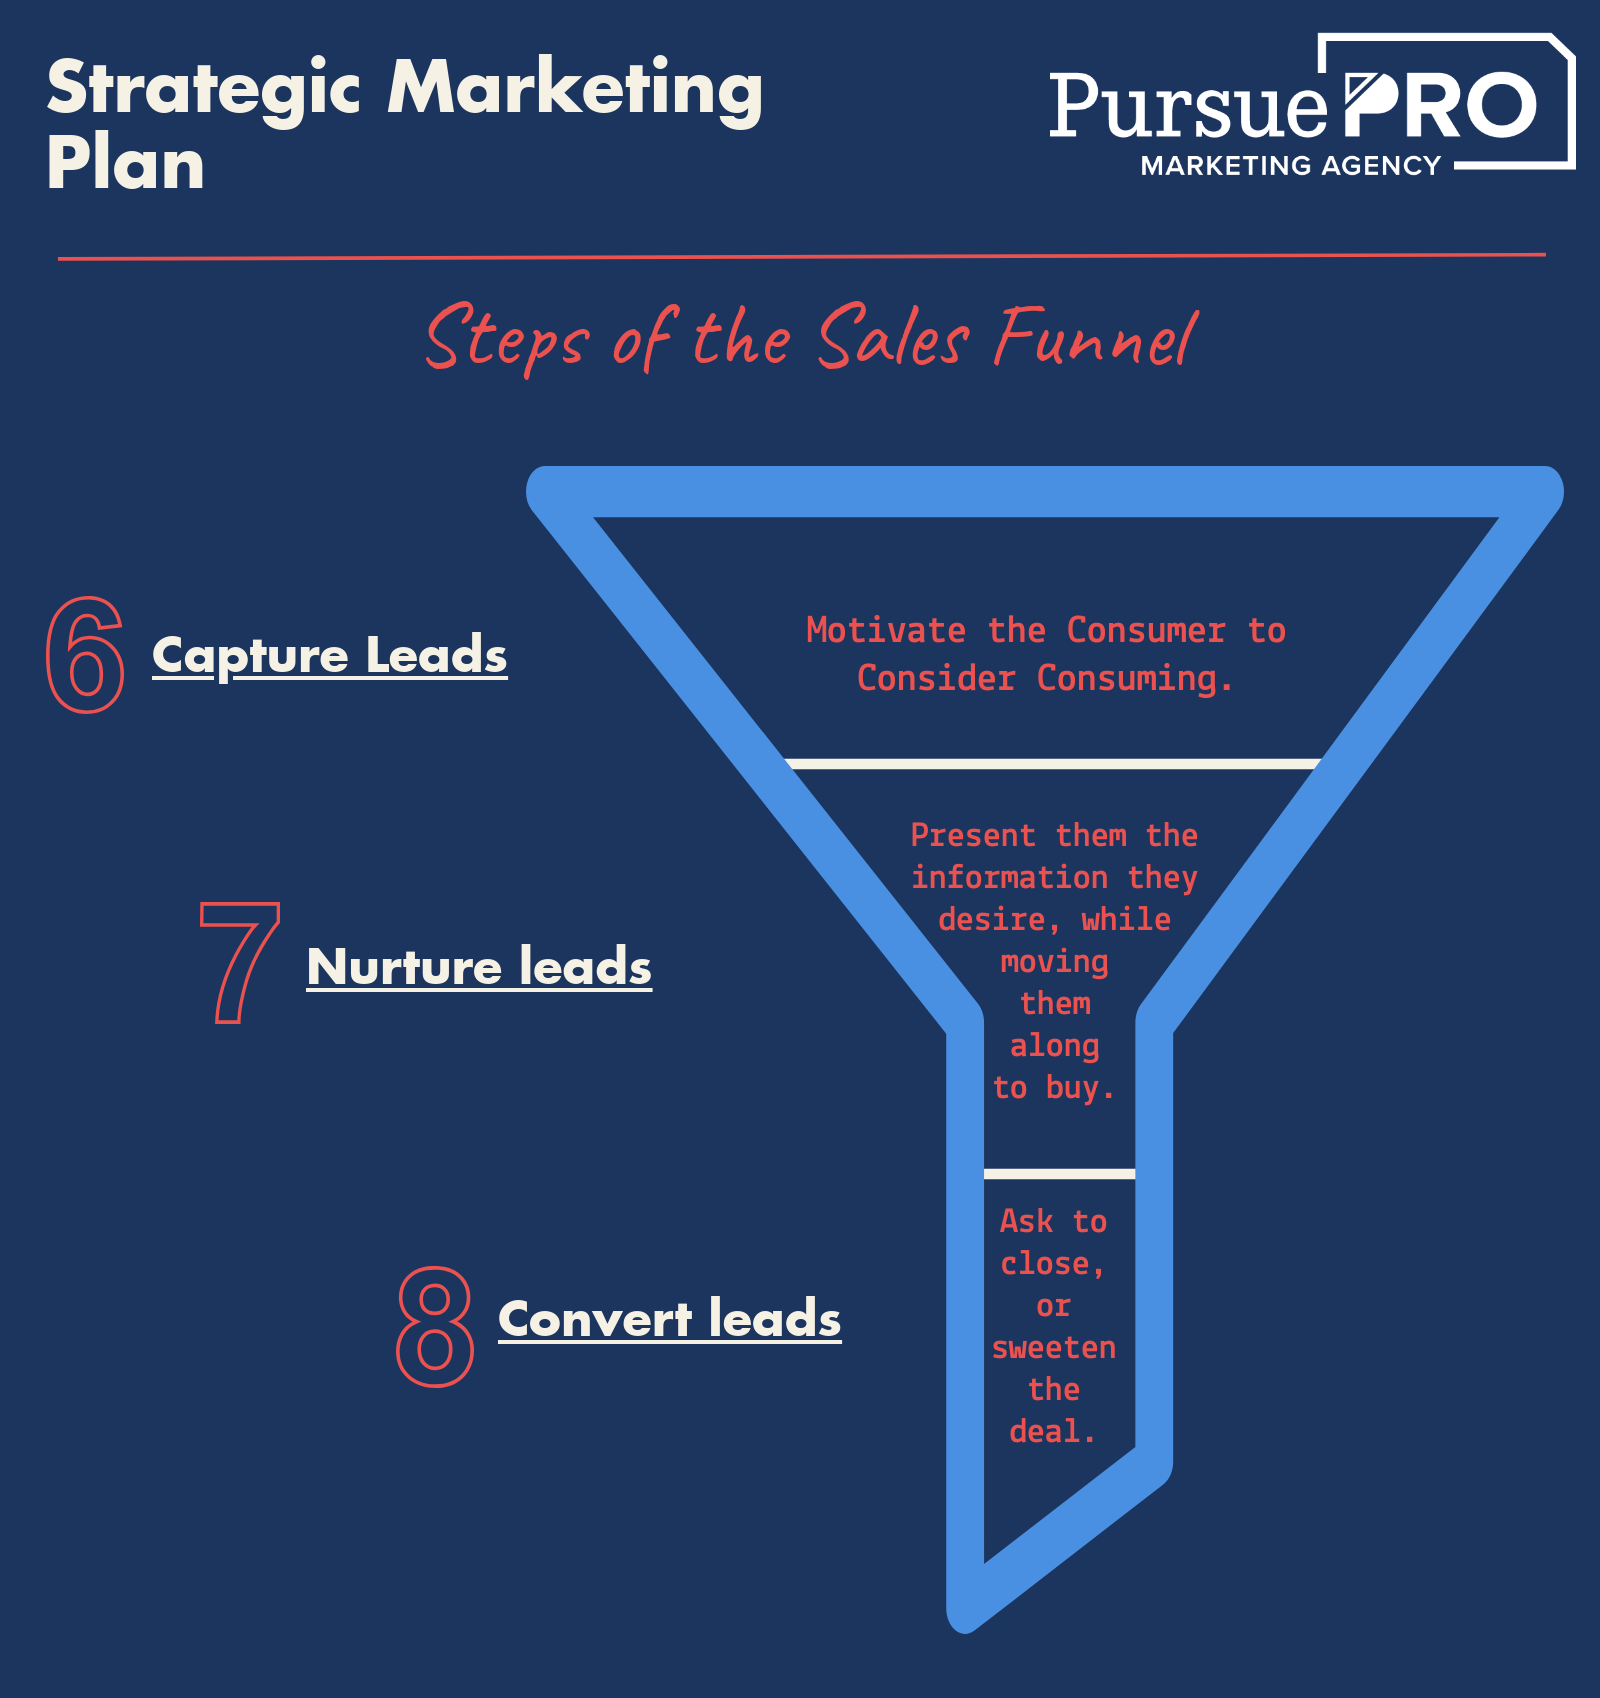 Strategic Marketing Plan - Sales Funnel Infographic